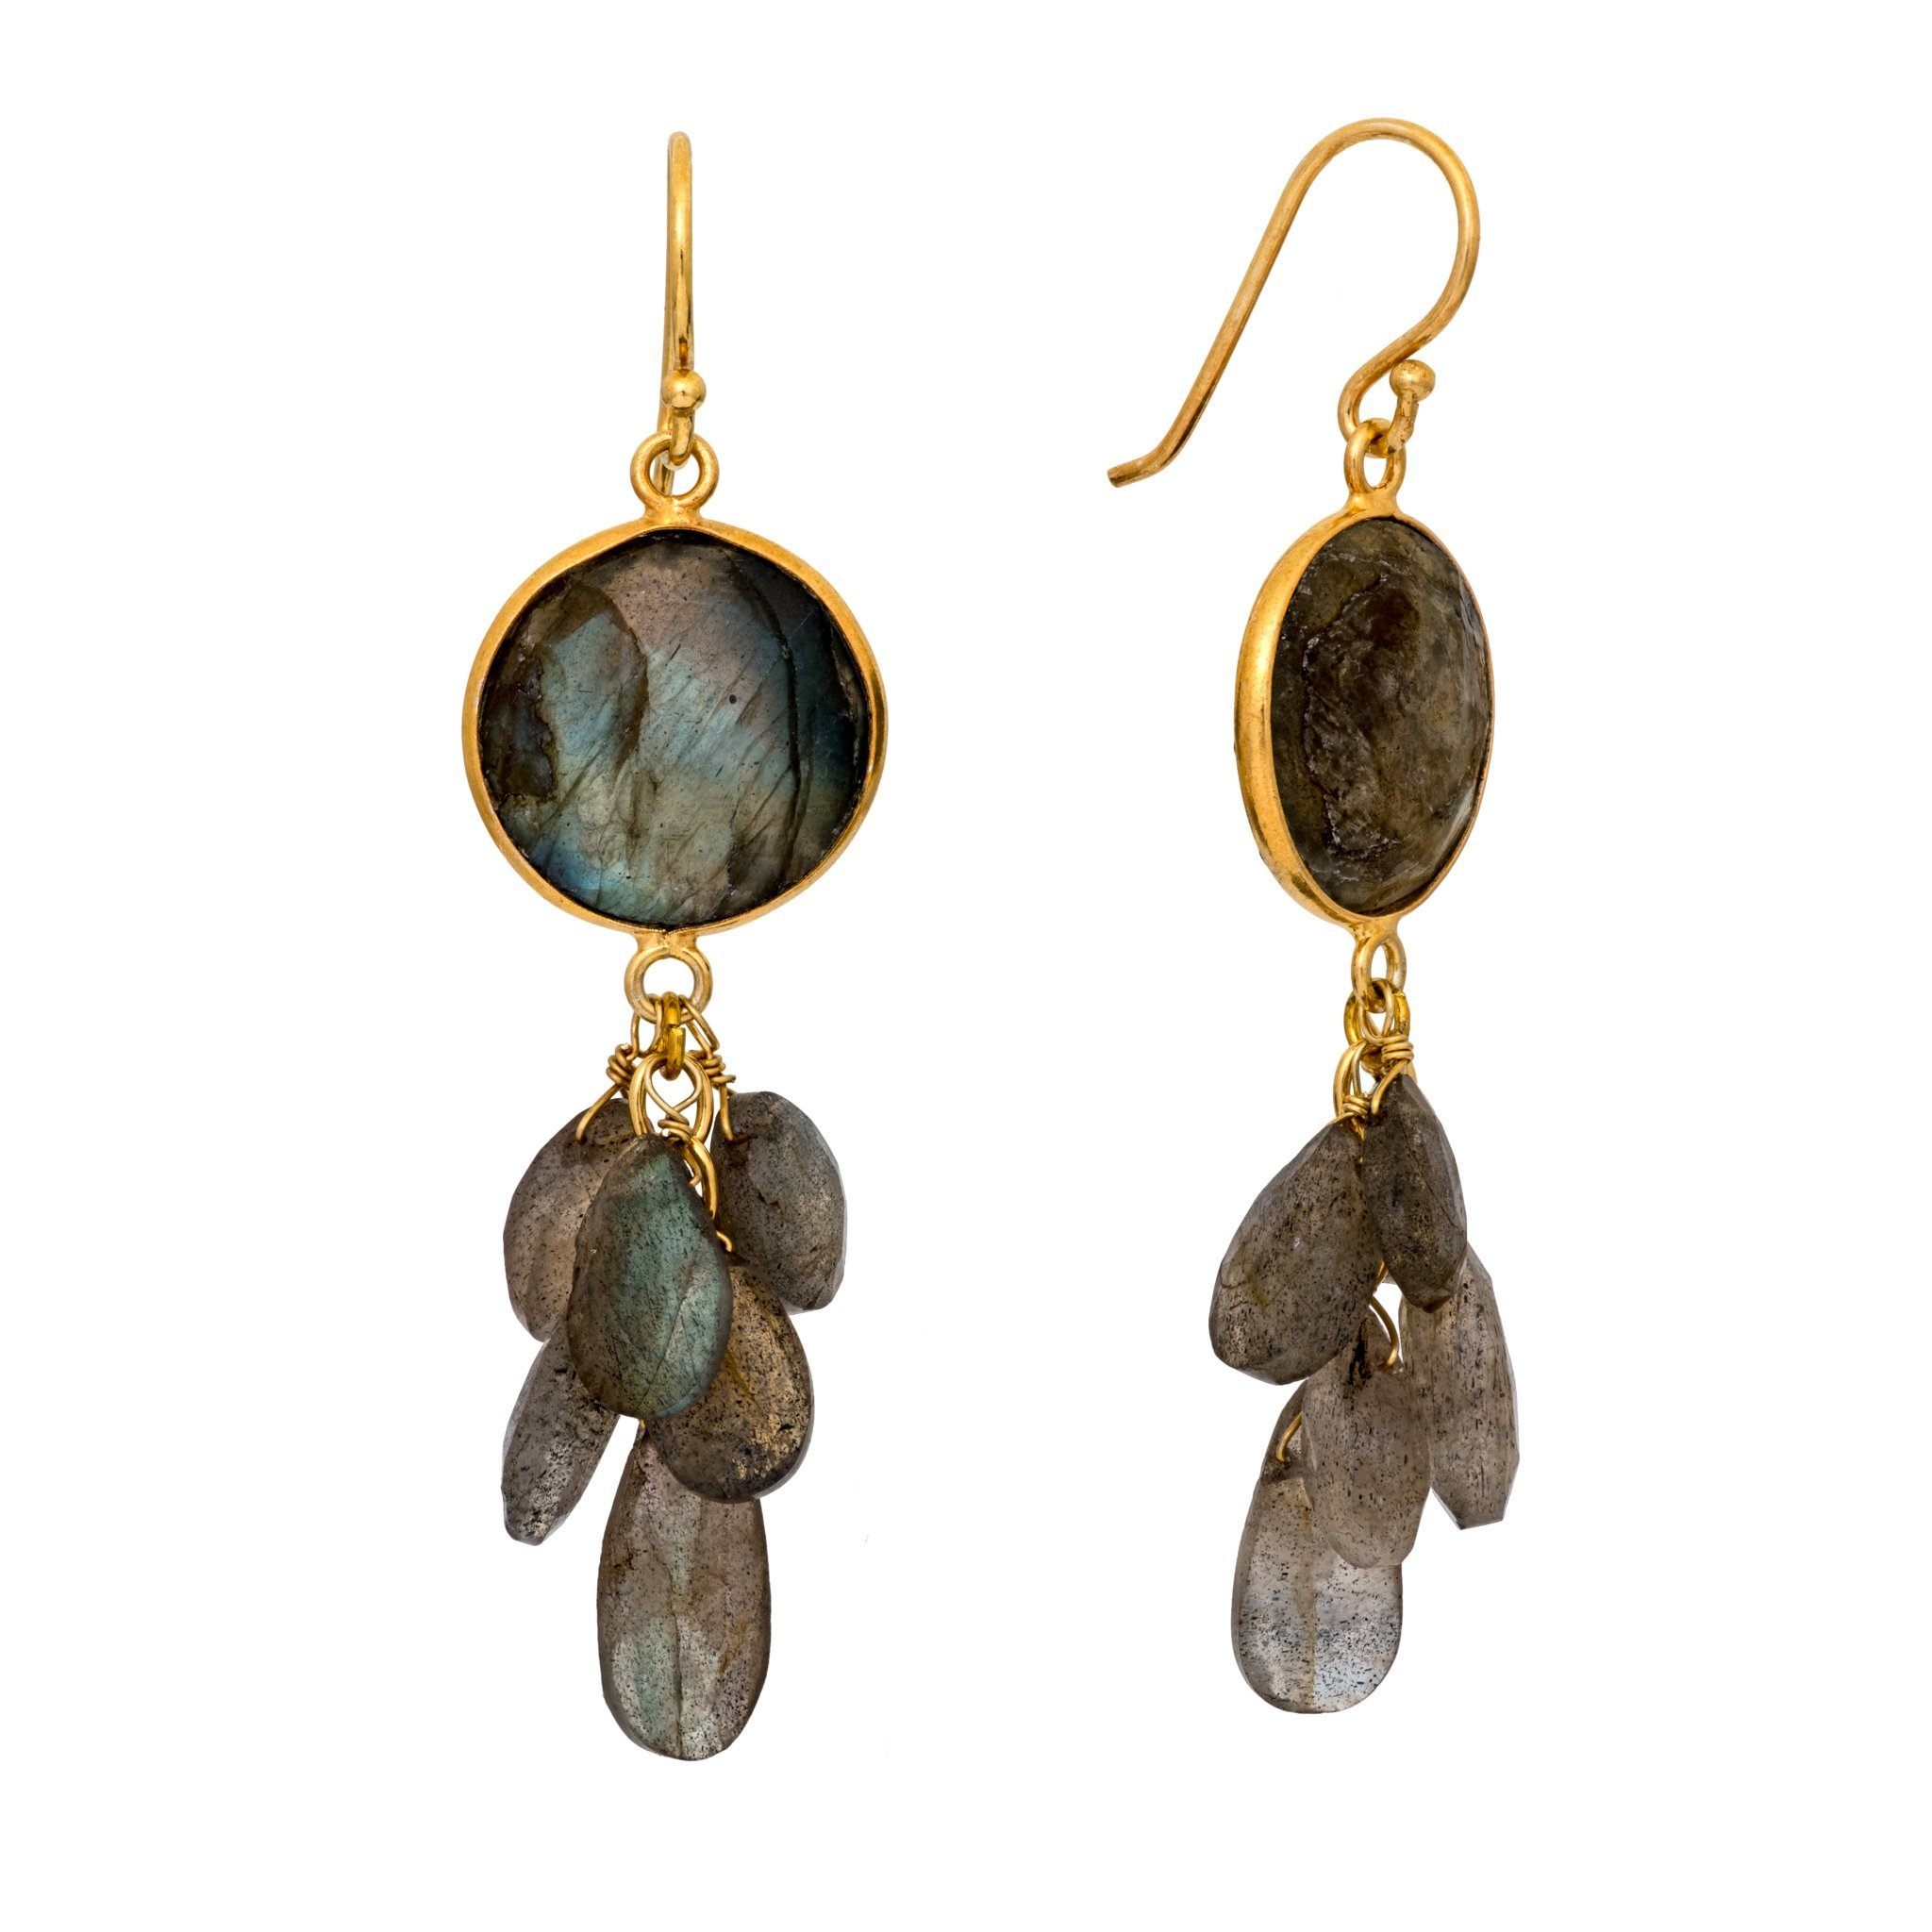 LUZ labradorite cluster earrings